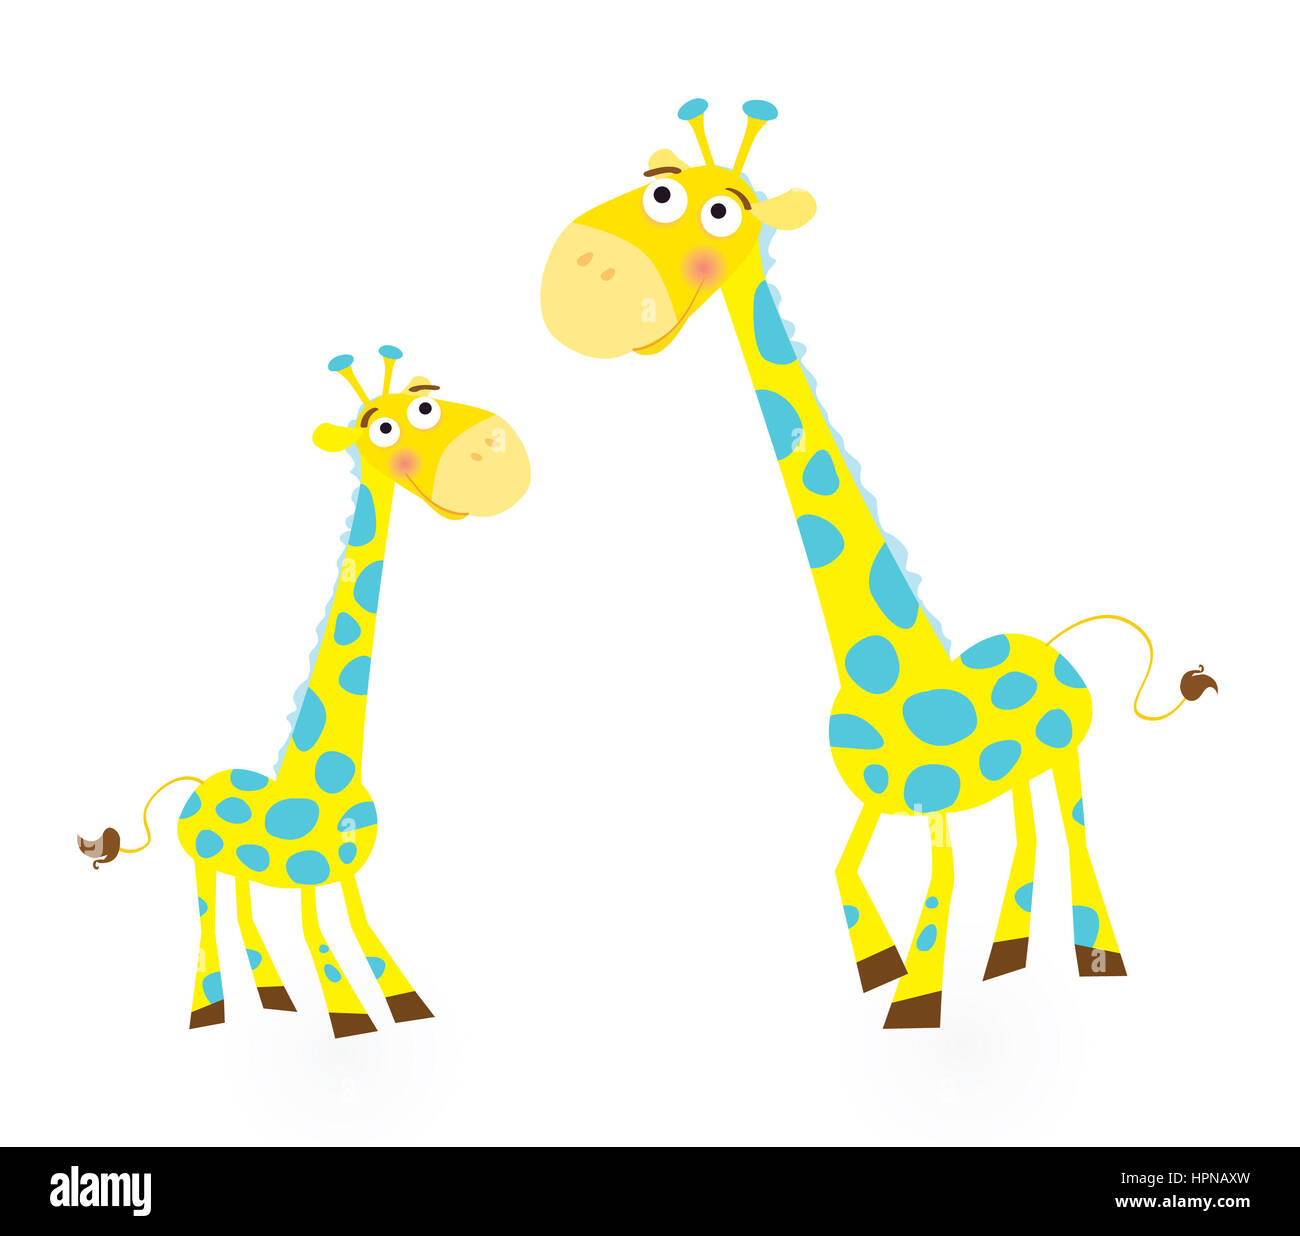 a737be60633 4639949 - giraffe family. vector illustration of giraffe mother and son.  see similar pictures